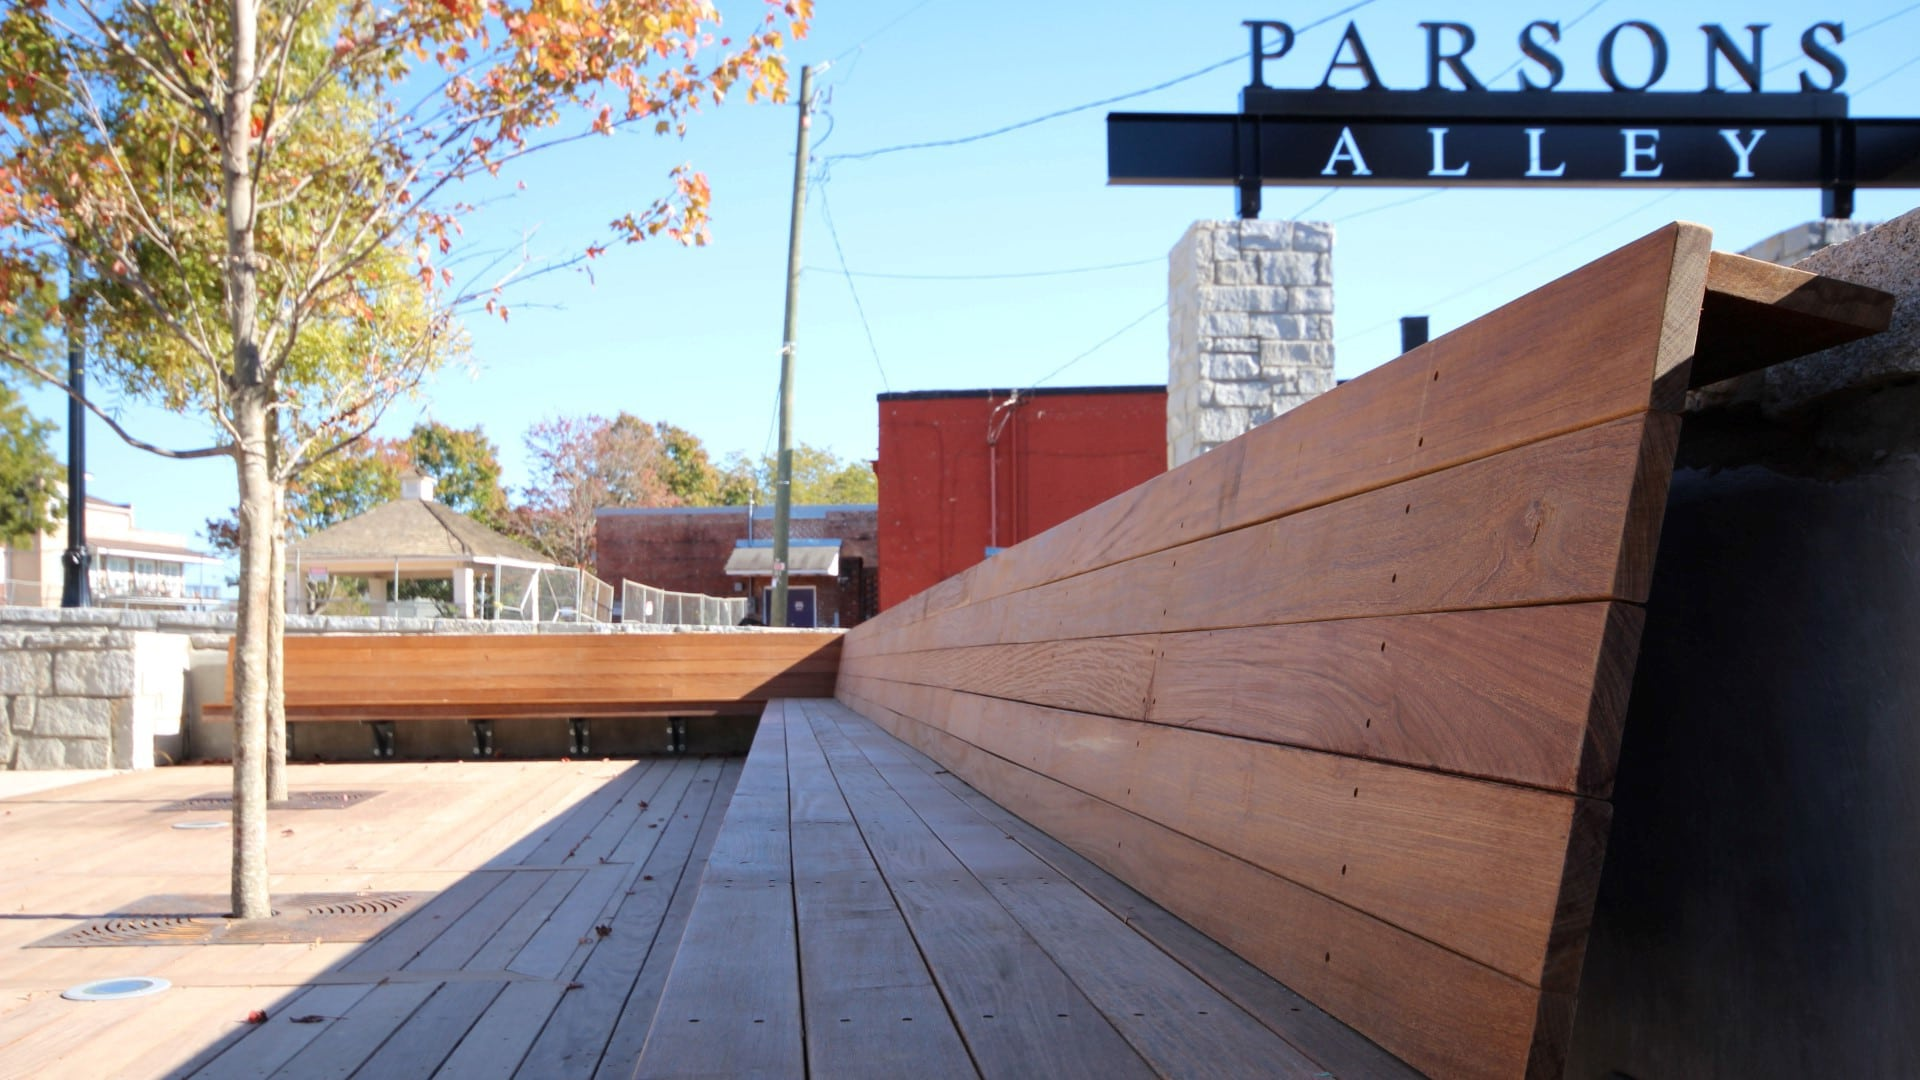 TSW Parsons-Alley_002-1 Parsons Alley Signage    TSW